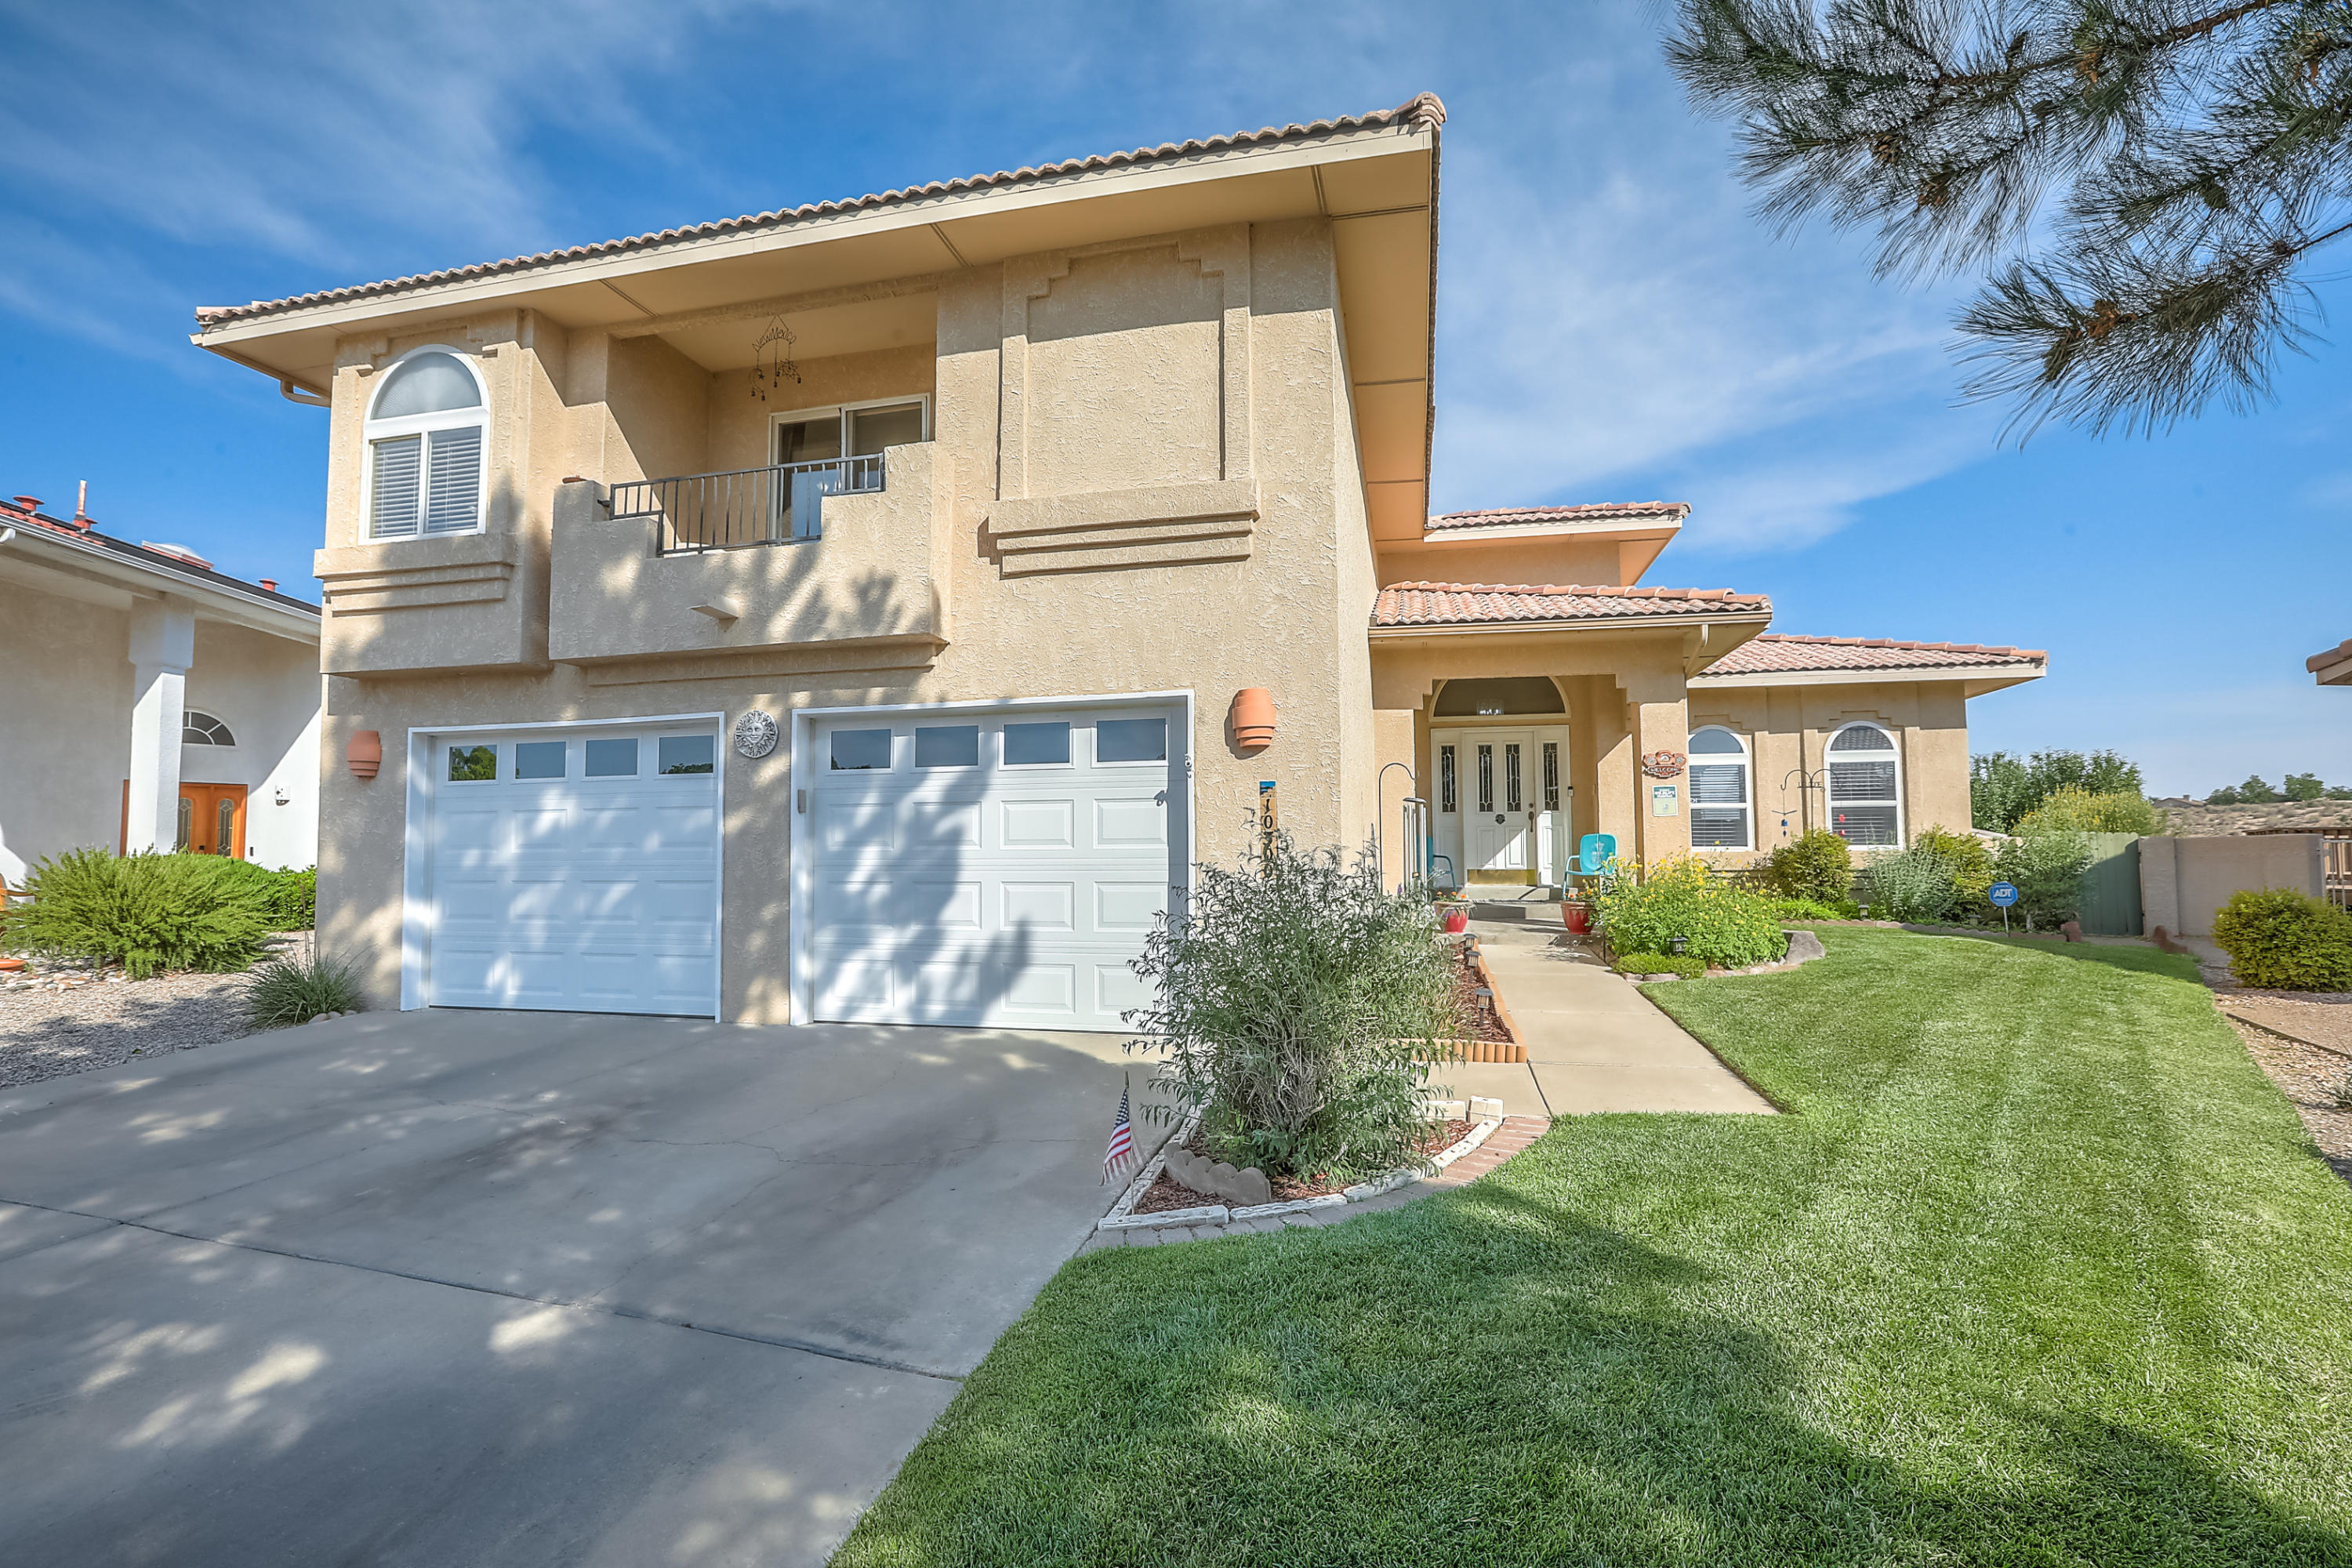 This exceptional, well-maintained semi-custom Mock home offers everything a homeowner could ever want. LOCATION - tucked into the corner of the Hunters Run neighborhood, backing up to the neighborhood park, walking distance to 7 Bar Elementary and Cibola High Schools, moments away from Cottonwood Mall, Lowe's, Home Depot, Costco and other retail services, restaurants, Lovelace Hospital, medical services, and more.  VIEWS - unobstructed and panoramic views of the Sandia and Manzano mountains by day, and beautiful City lights by night.  QUALITY CONSTRUCTION - 2 x 6 construction, tile roof, oversized 2-car garage, extended rear patio and wonderfully landscaped front and rear yards.  LIVABILITY - thoughtfully designed floorplan opens to a formal living room and dining room, bright open kitchen